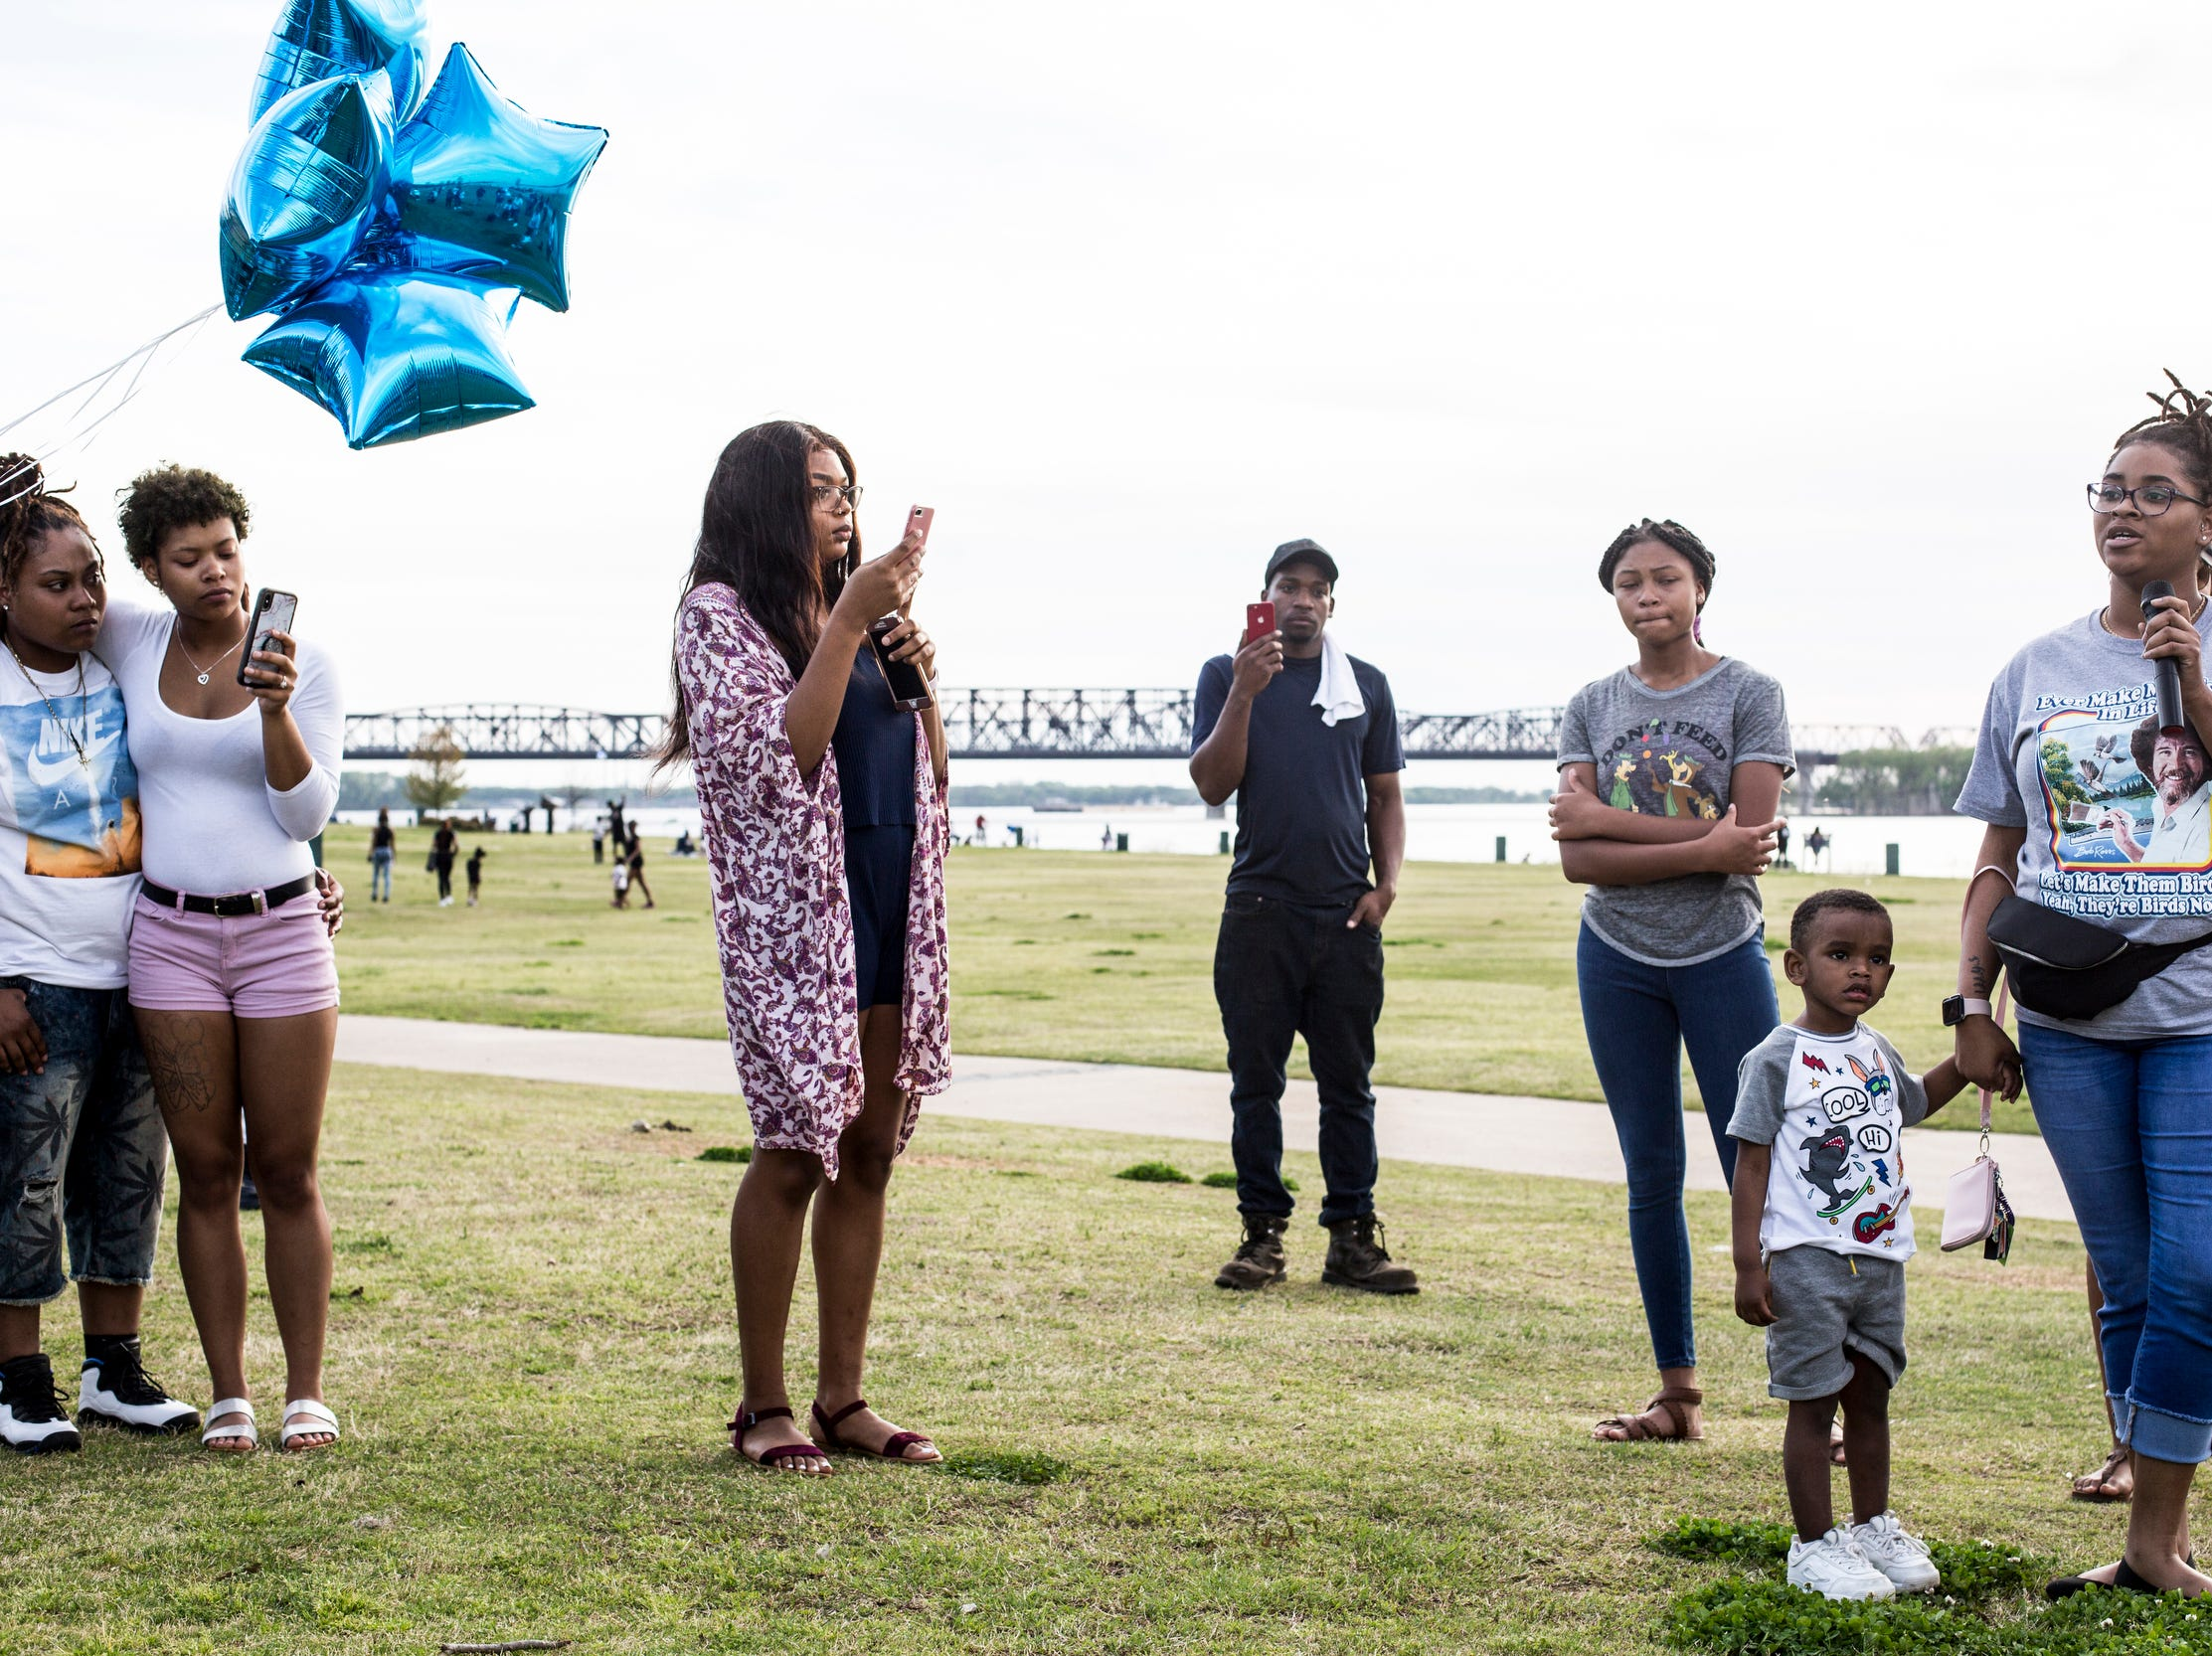 April 10, 2019 - Osean Bailey, right, with her son, Princeton Sharp, 3, speaks during a vigil in honor of Nipsey Hussle at Tom Lee Park on Wednesday evening. Nipsey Hussle, a Grammy-nominated rapper and businessman, was shot to death in front of his clothing store Los Angeles.